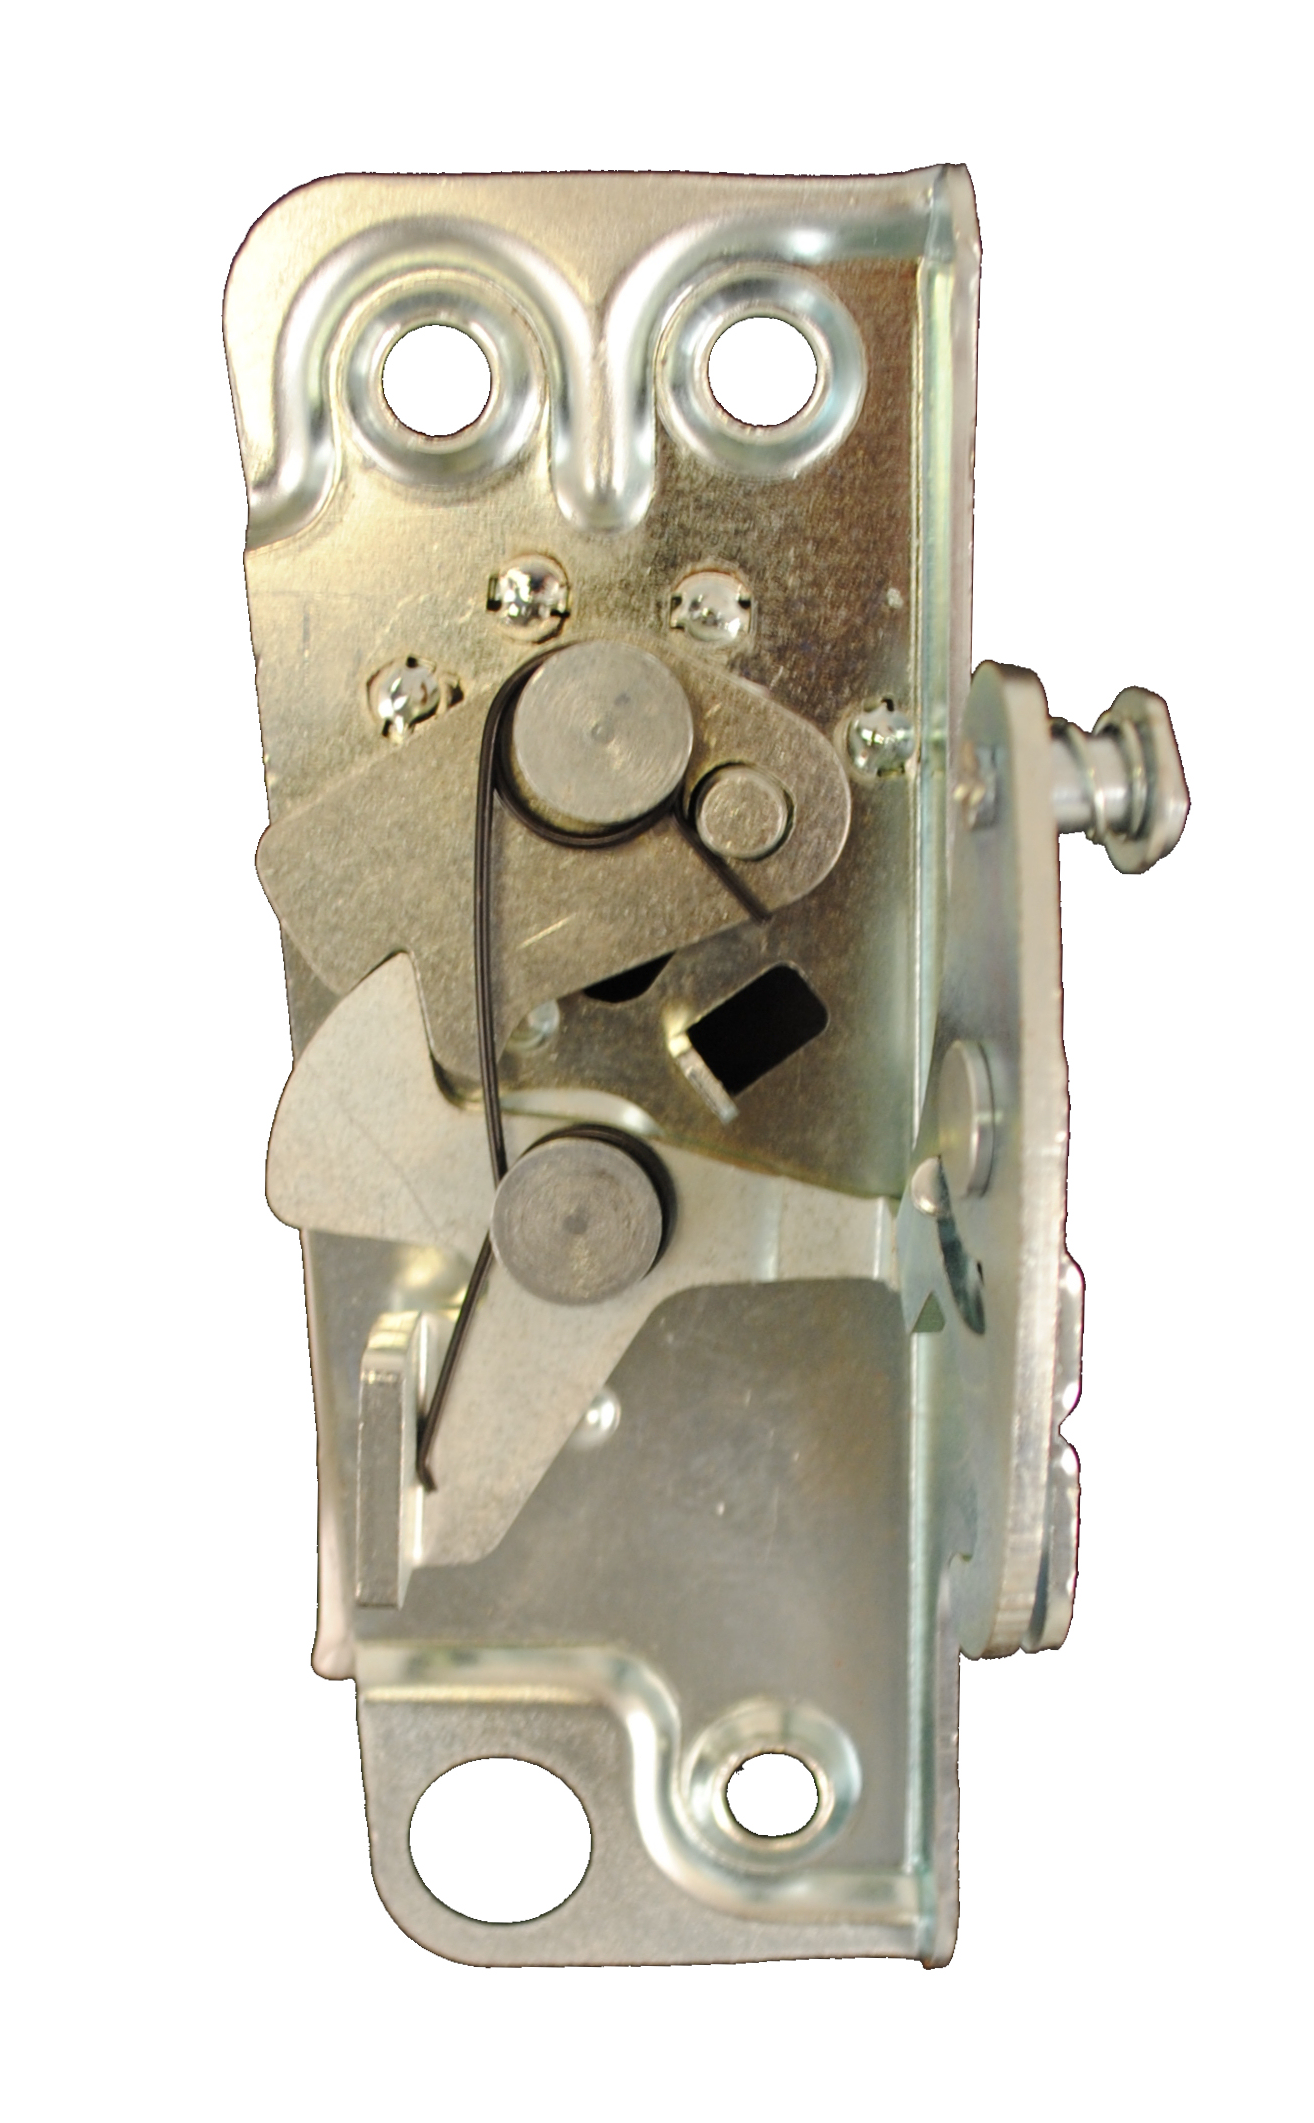 1955-59 C10 door latch assembly rt 3100/3200/3600